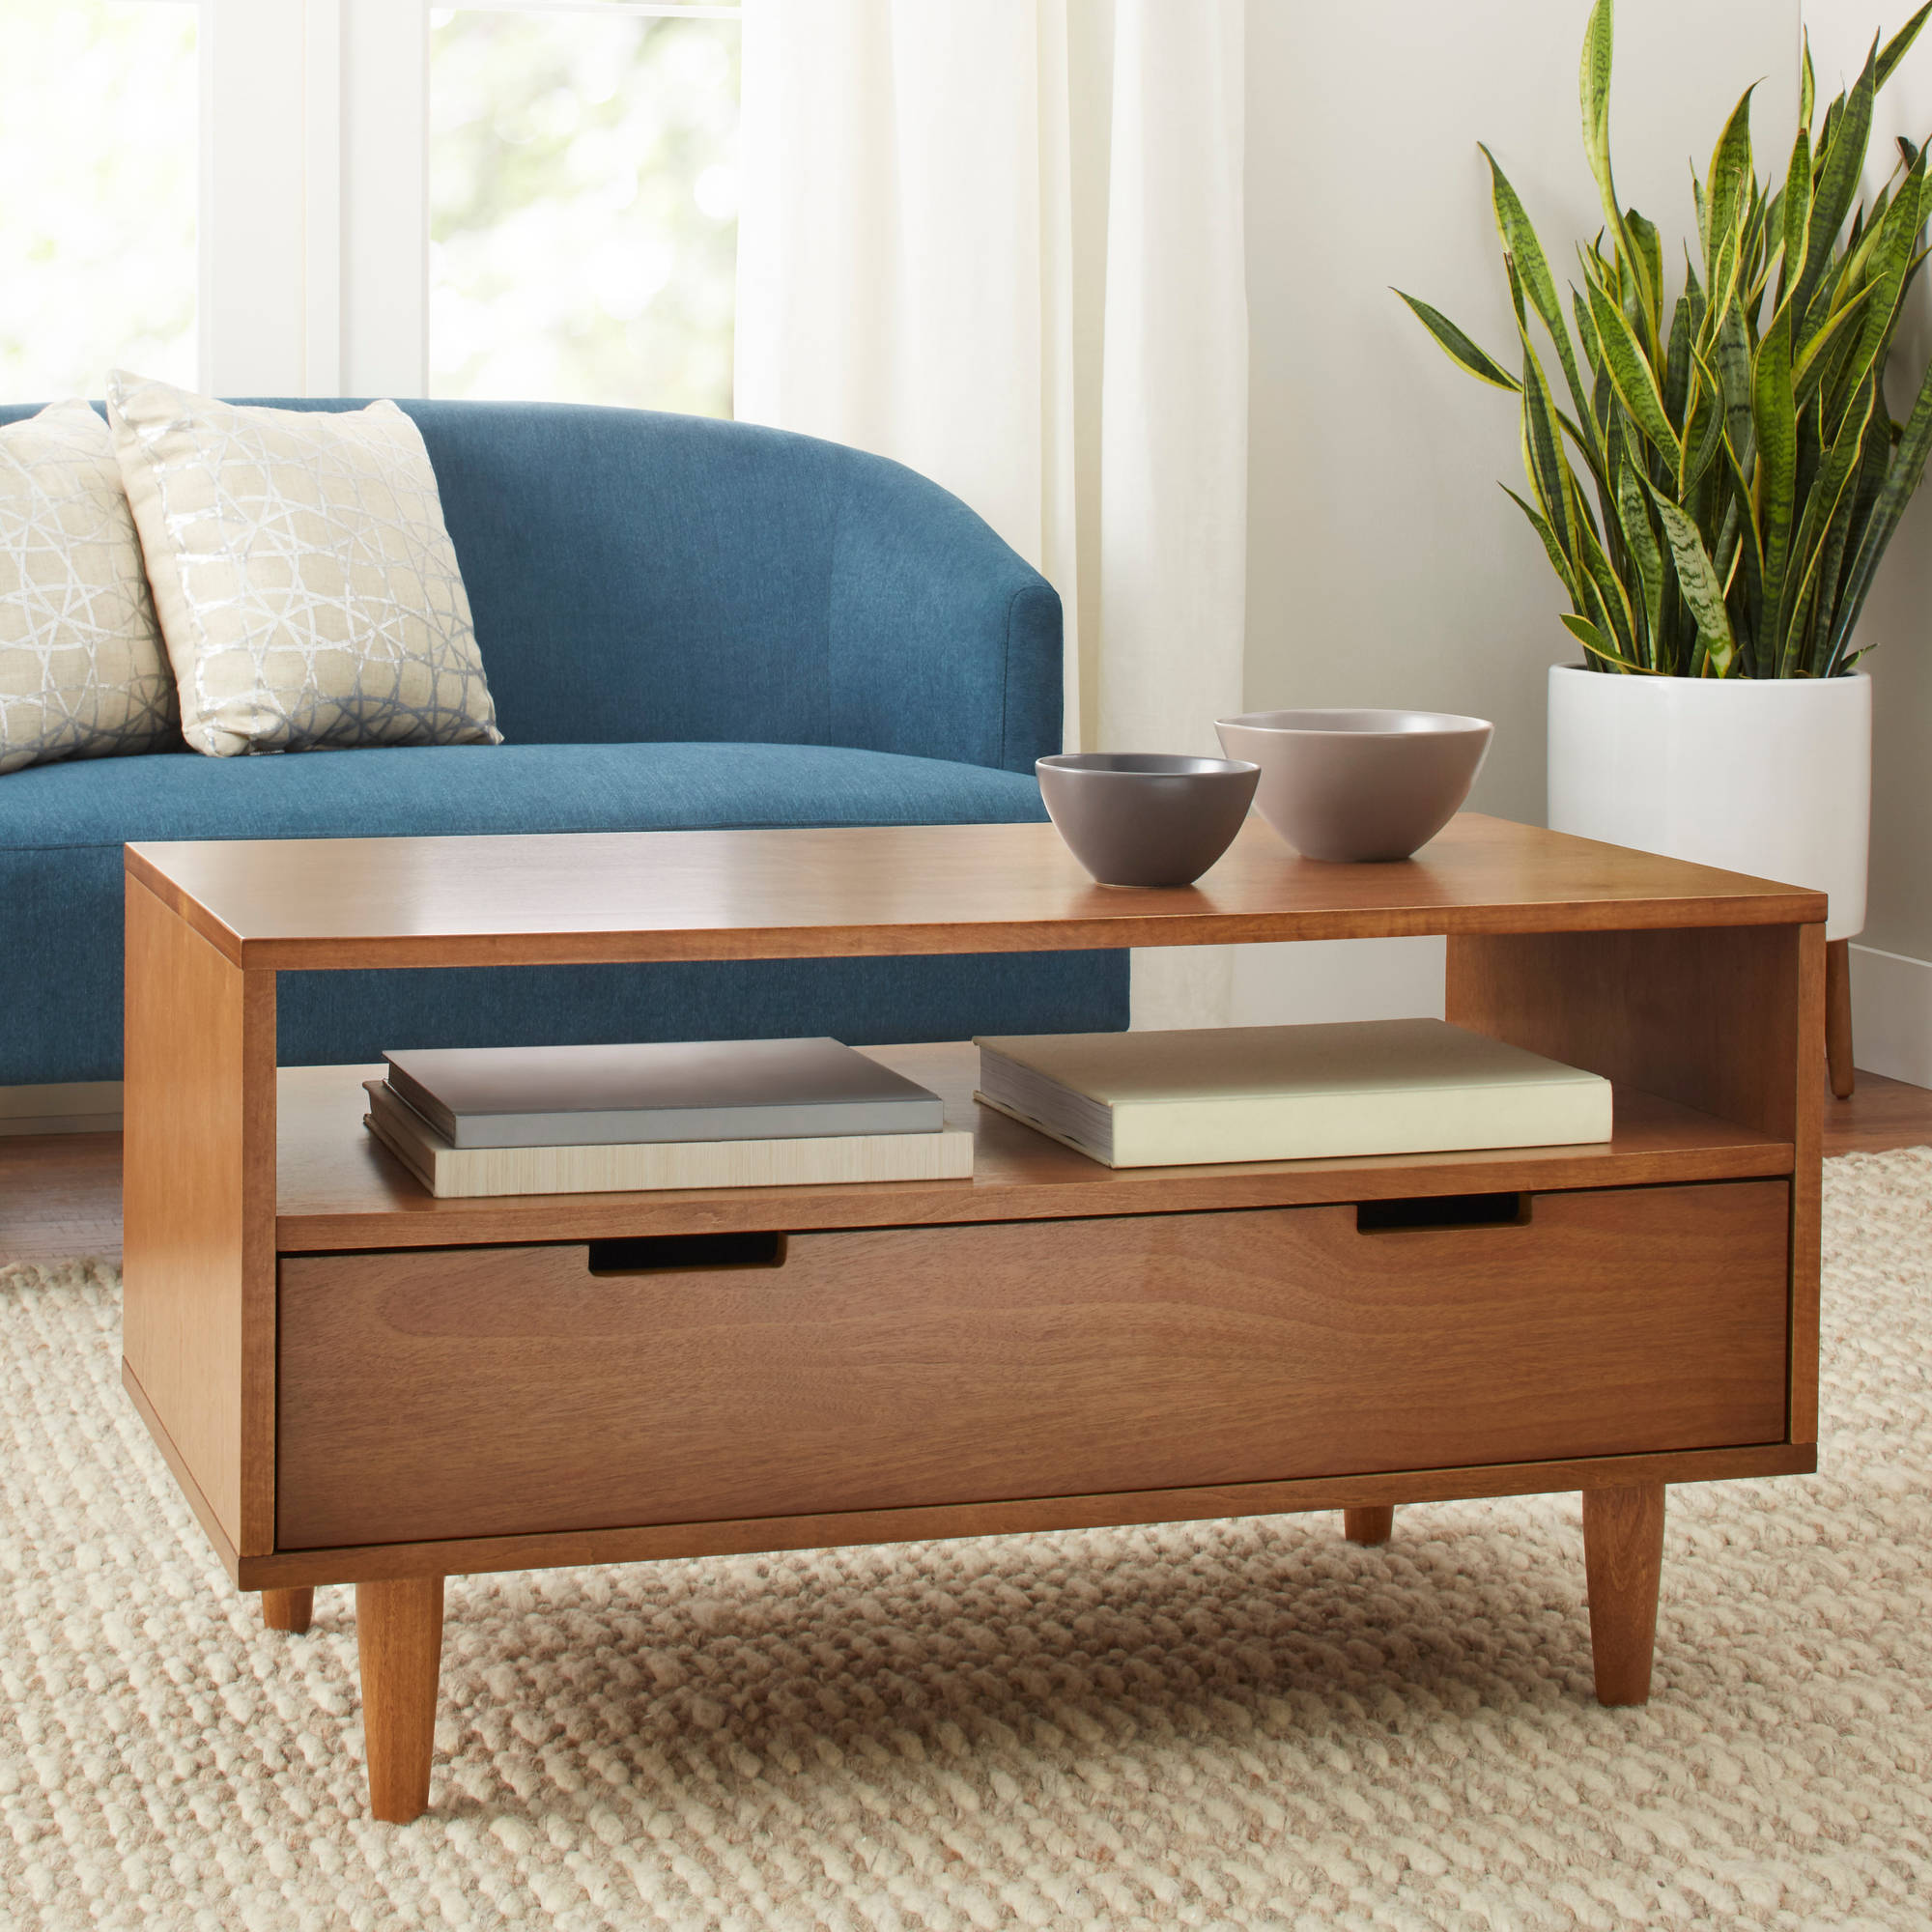 better homes & gardens flynn mid century modern coffee table, pecan